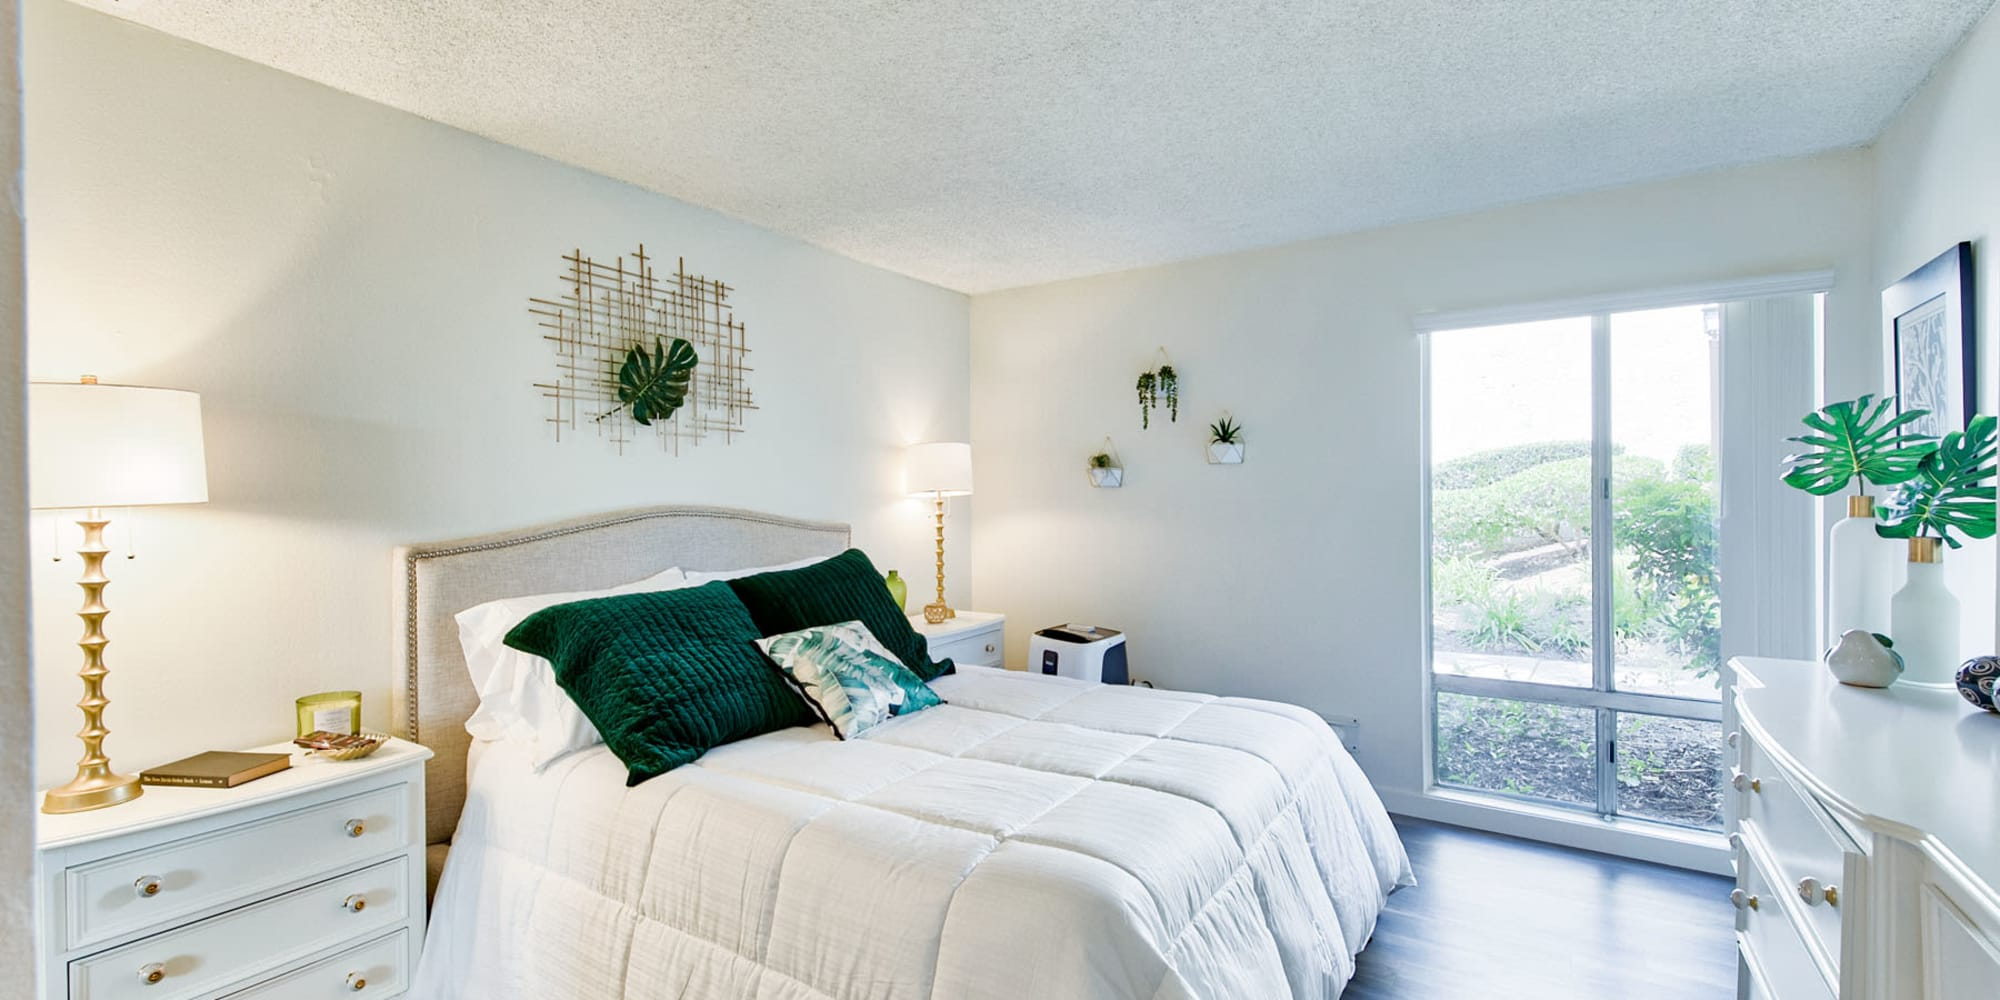 Large bay windows filling a model home's primary bedroom with natural light at Mediterranean Village Apartments in Costa Mesa, California